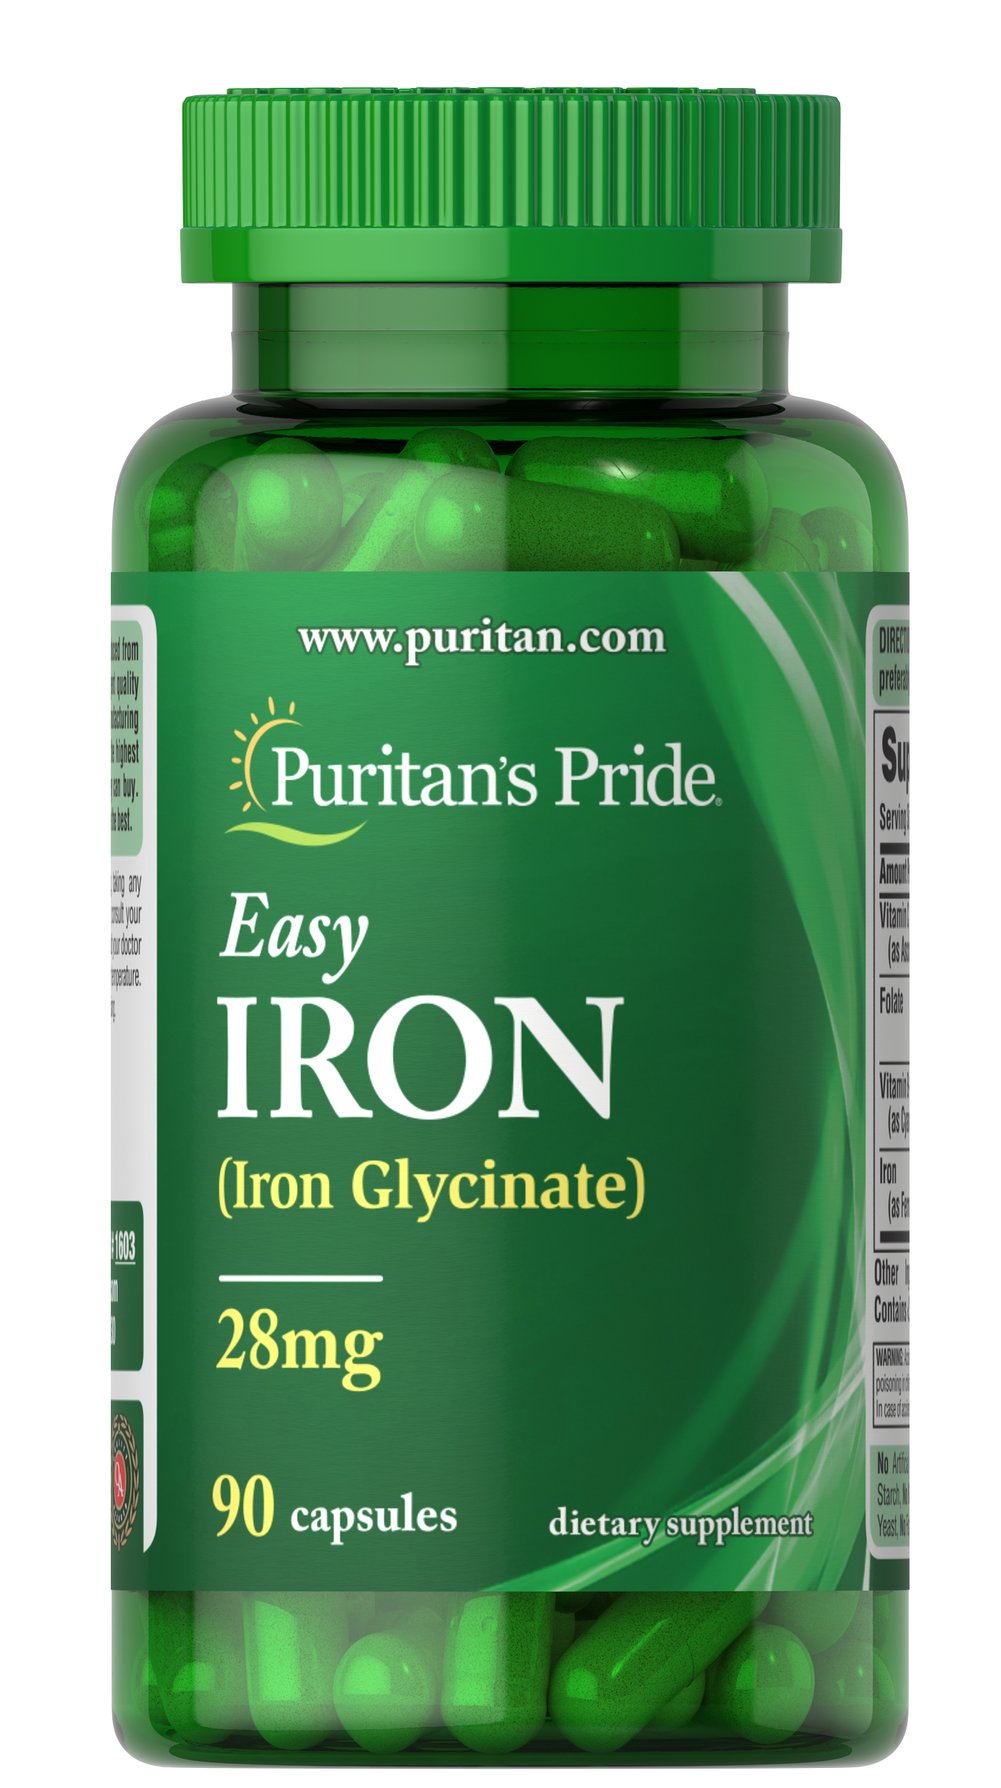 Easy Iron 28 mg (Iron Glycinate) <p>Supports Energy Utilization**</p><p>As an important dietary source of Iron, EASY IRON contains Iron Bis-Glycinate, a form of Iron that is gentle to your system.**  Iron is a necessary component of hemoglobin, the oxygen carrier in the blood and is also important for energy utilization.** </p> 90 Capsules 28 mg $10.49